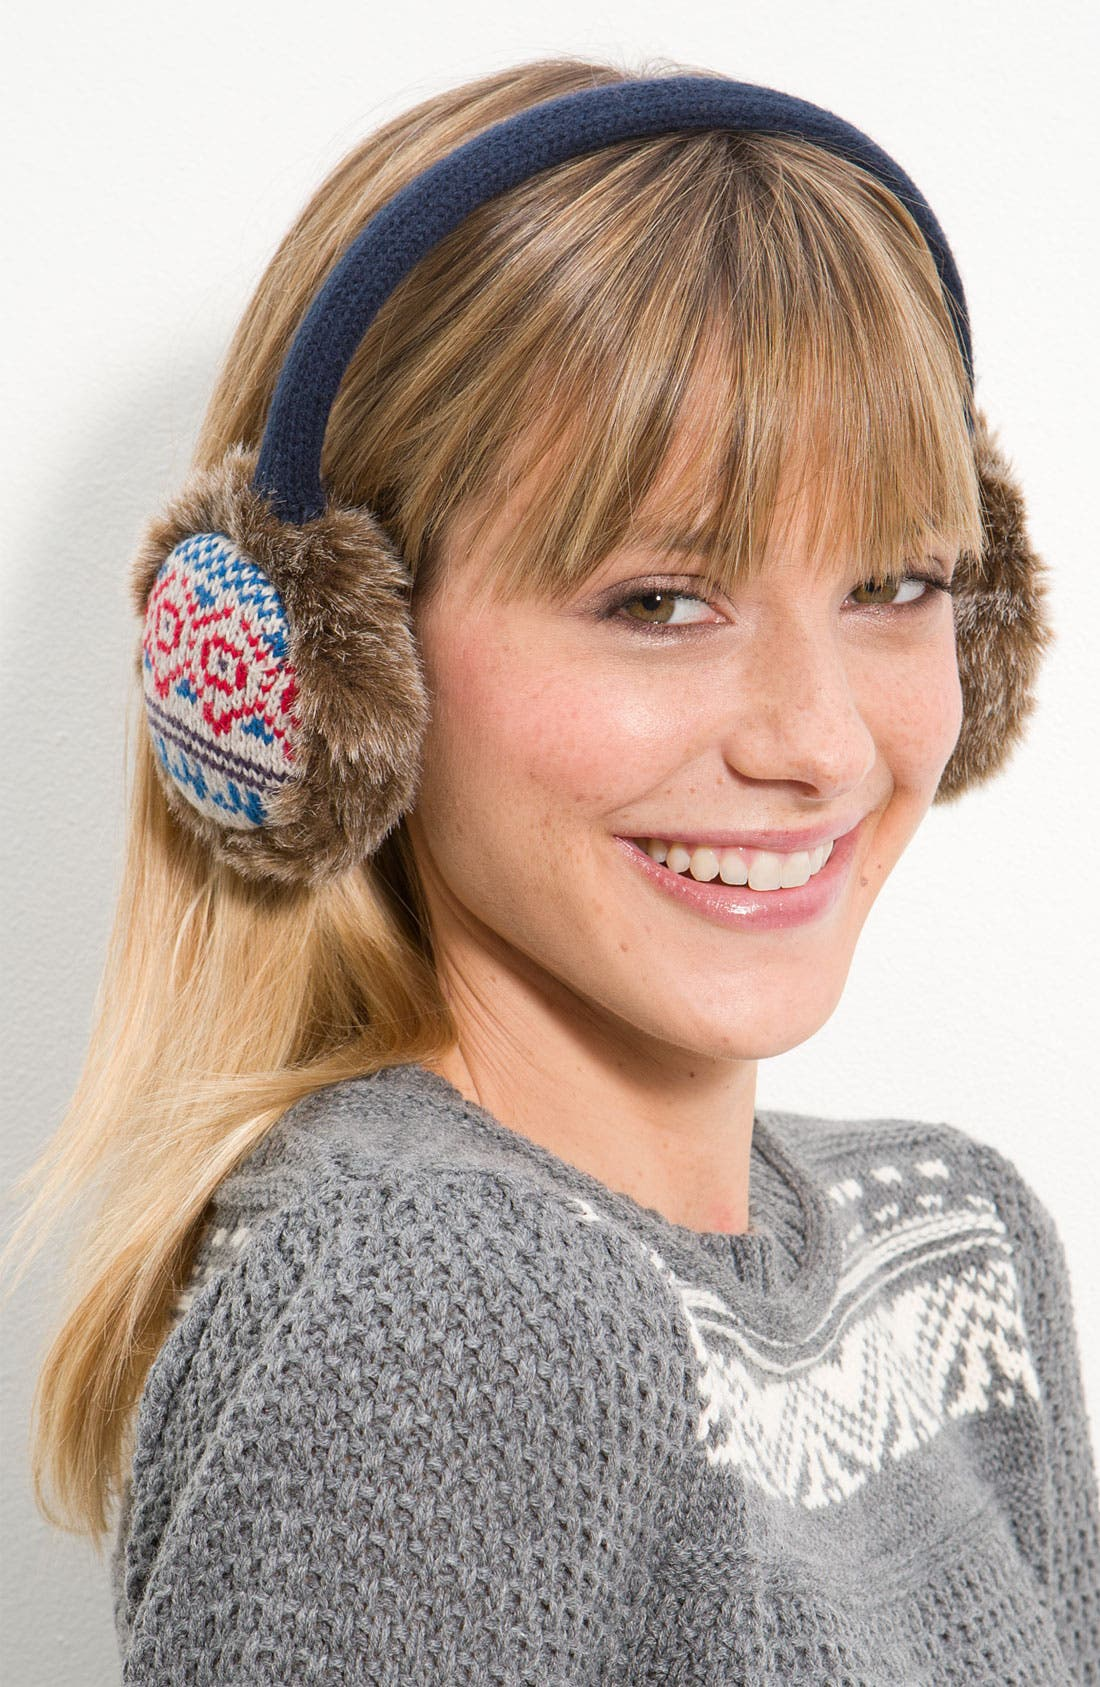 Main Image - The Accessory Collective Nordic Knit Earmuff With Faux Fur Trim